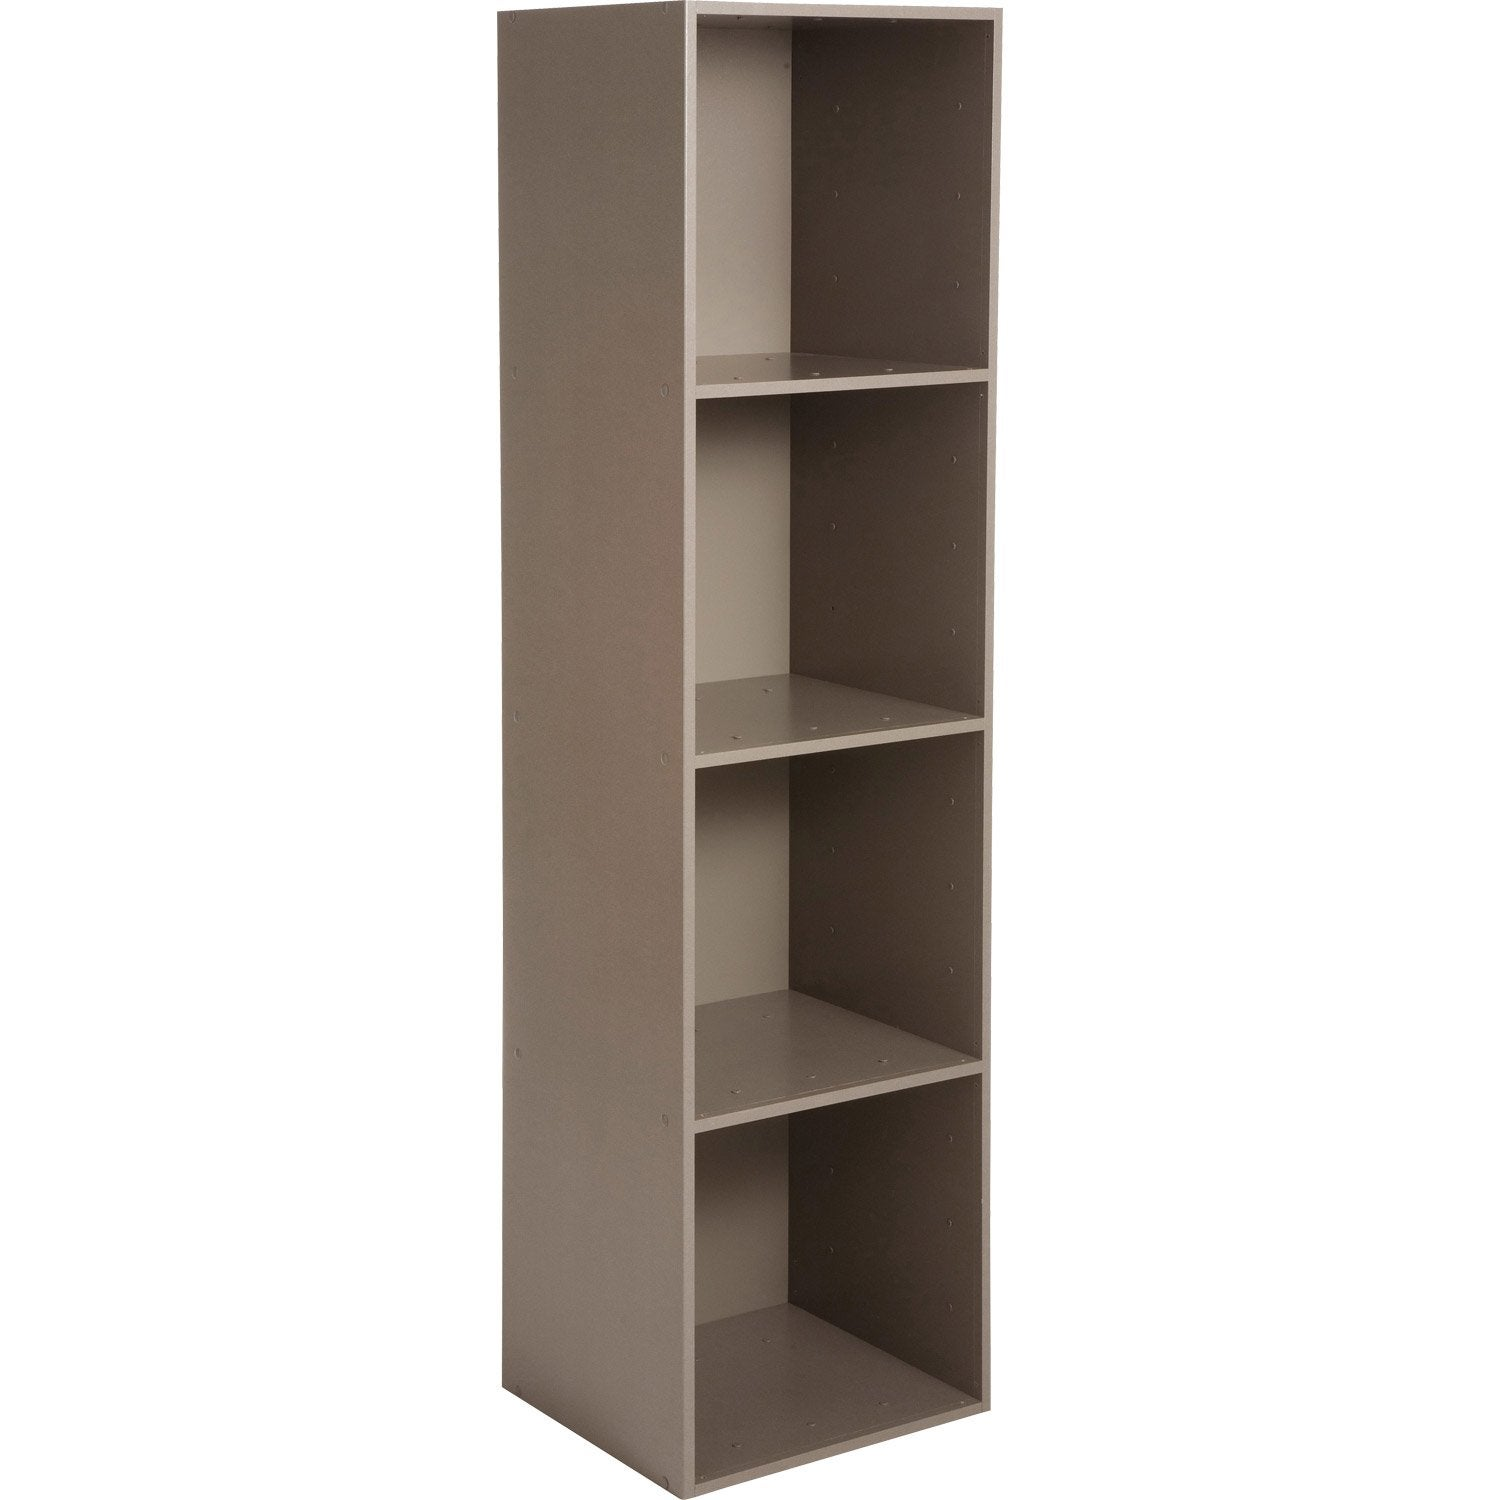 Etag re 4 cases multikaz taupe l35 2 x h137 2 x p31 7 cm - Leroy merlin casier rangement ...